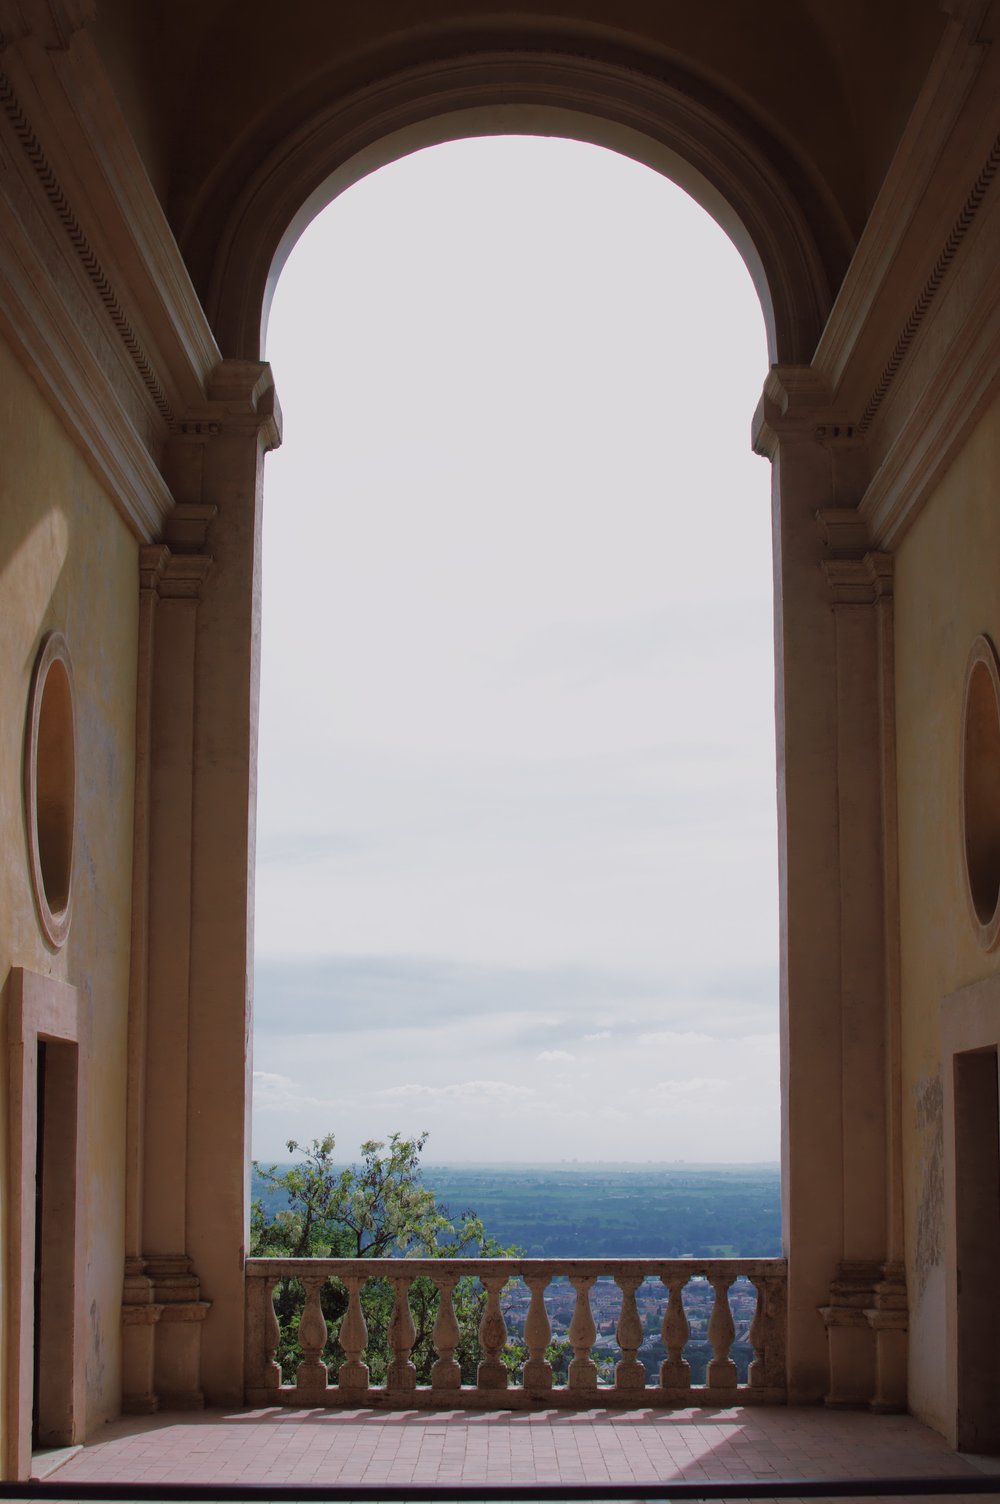 Overlooking the Italian countryside from the Villa. The same view that perhaps a certain Cardinal had?